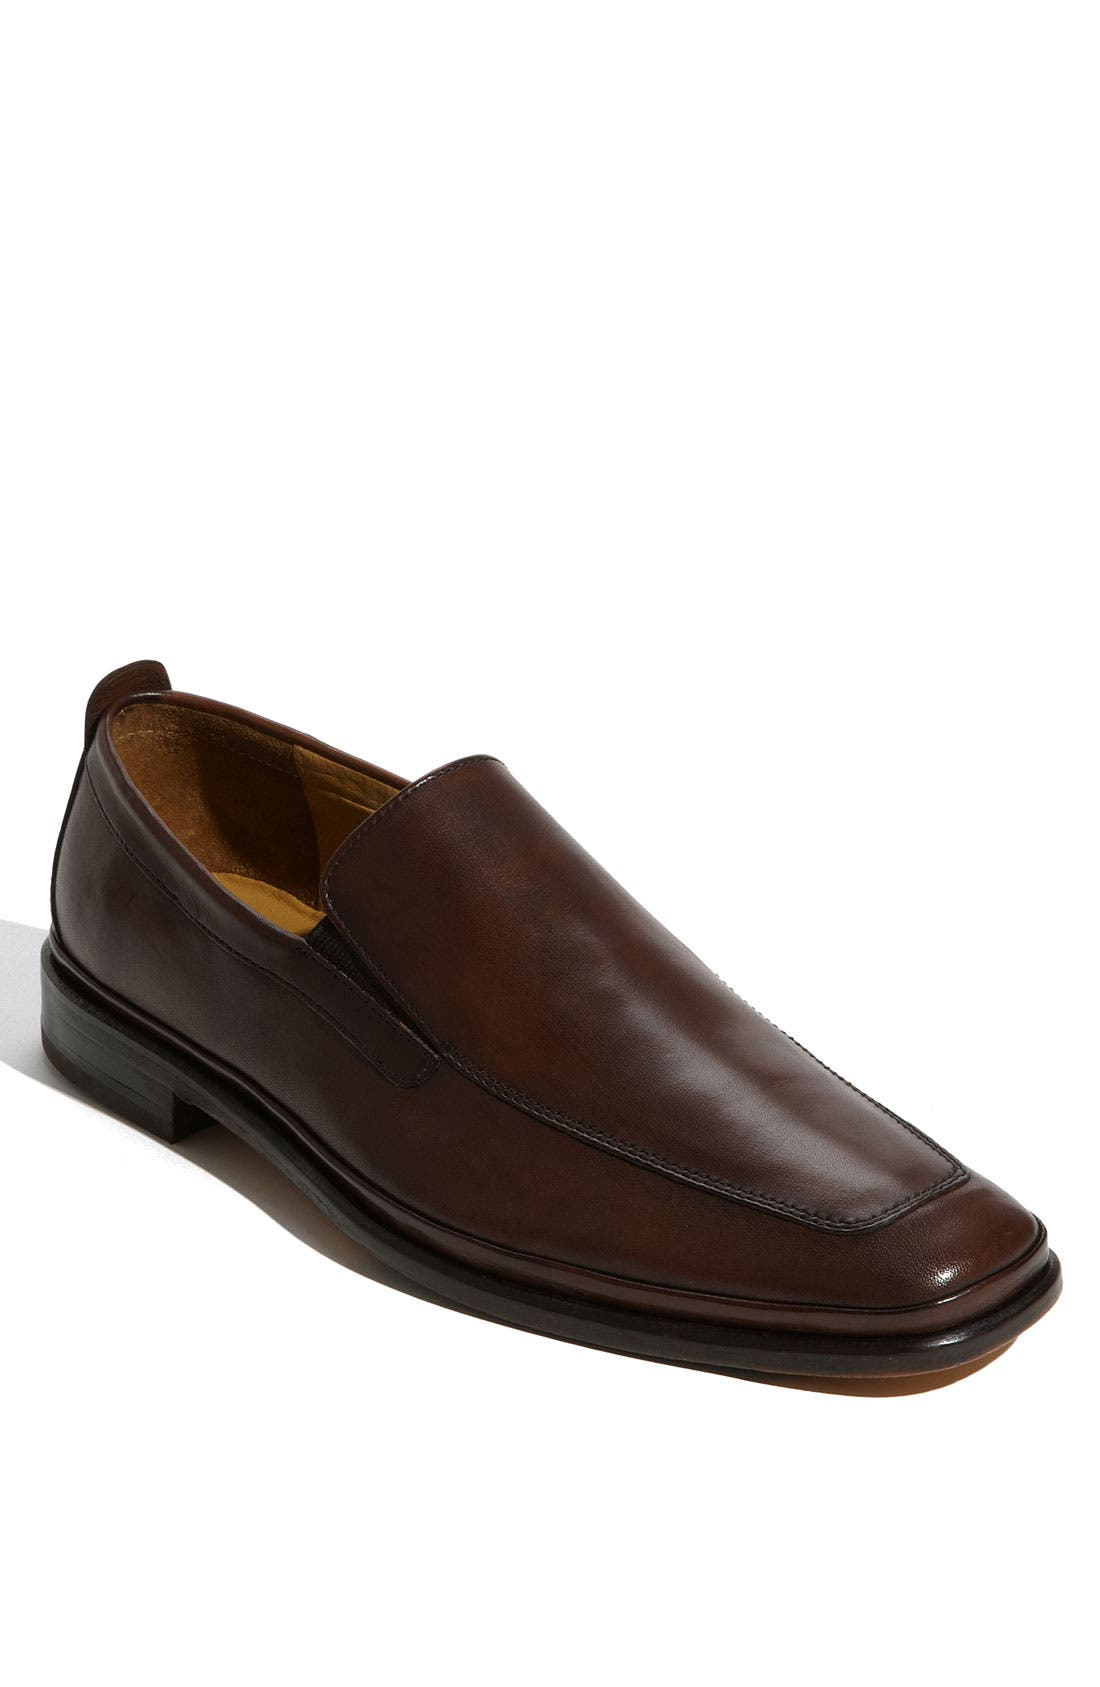 Alternate Image 1 Selected - Cole Haan 'Bradenton' Venetian Slip-On